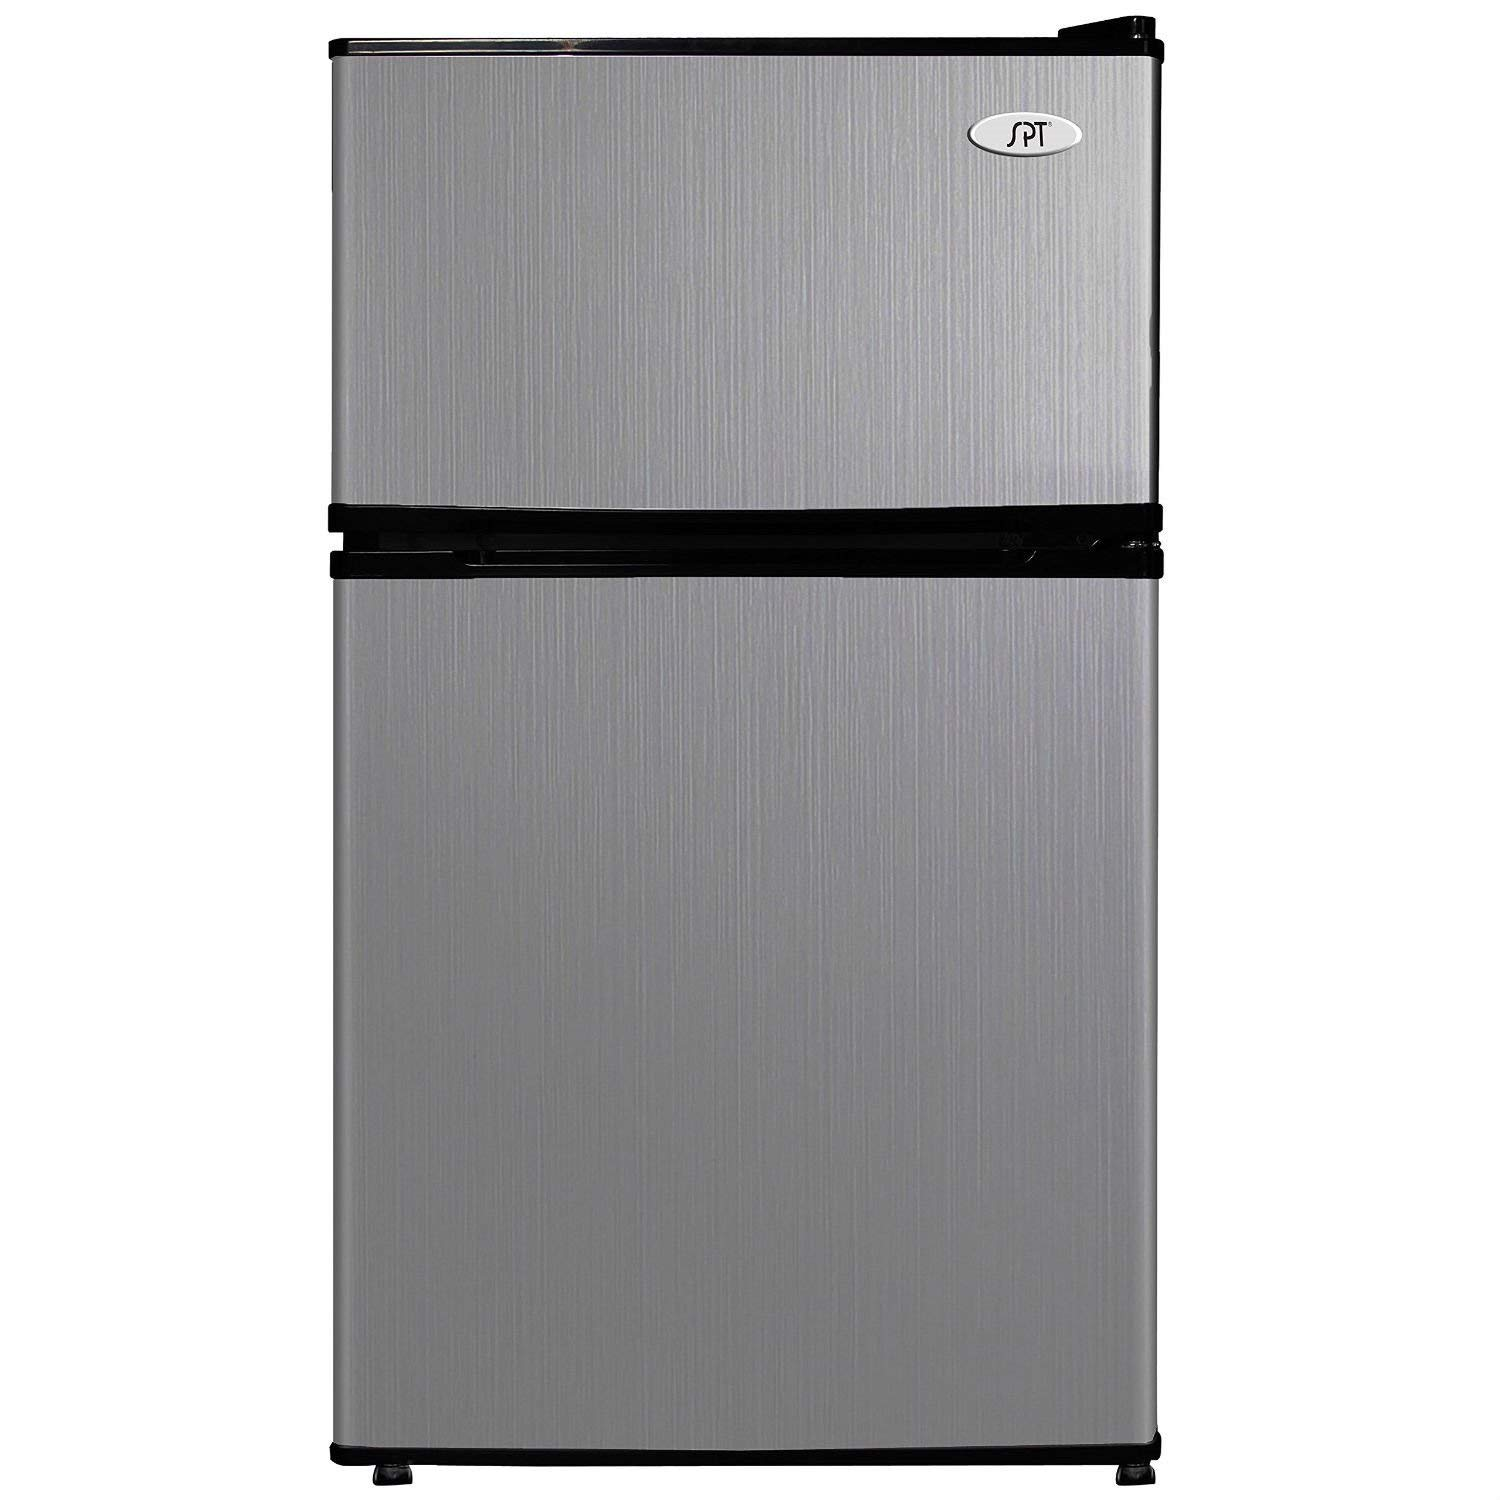 Trustpurchase 3.1 Cubic Foot Double Door Stainless Steel Refrigerator with Freezer, has Double Door: Separate Fridge and Freezer Compartments, Plus Slide-Out Wire Shelf for Storage Versatility